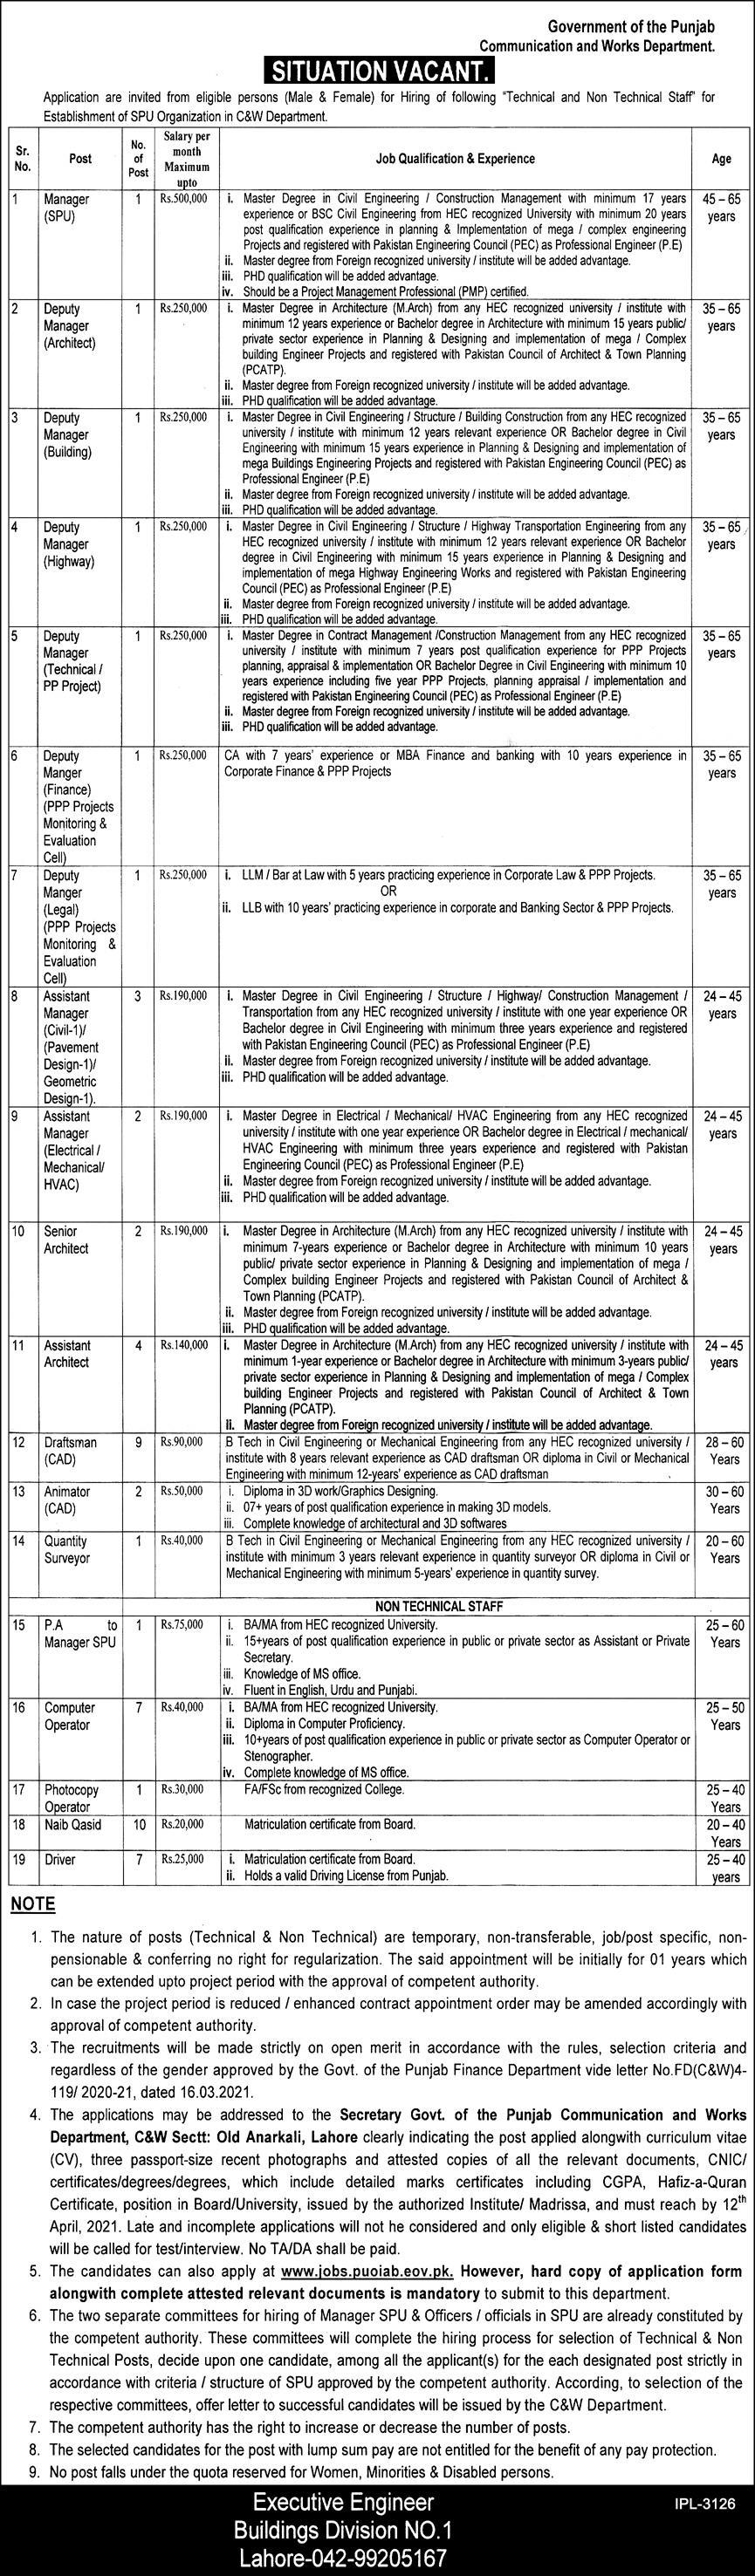 Communication & Works Department jobs newspaper ad for Quantity Surveyor in Lahore on 2021-04-07